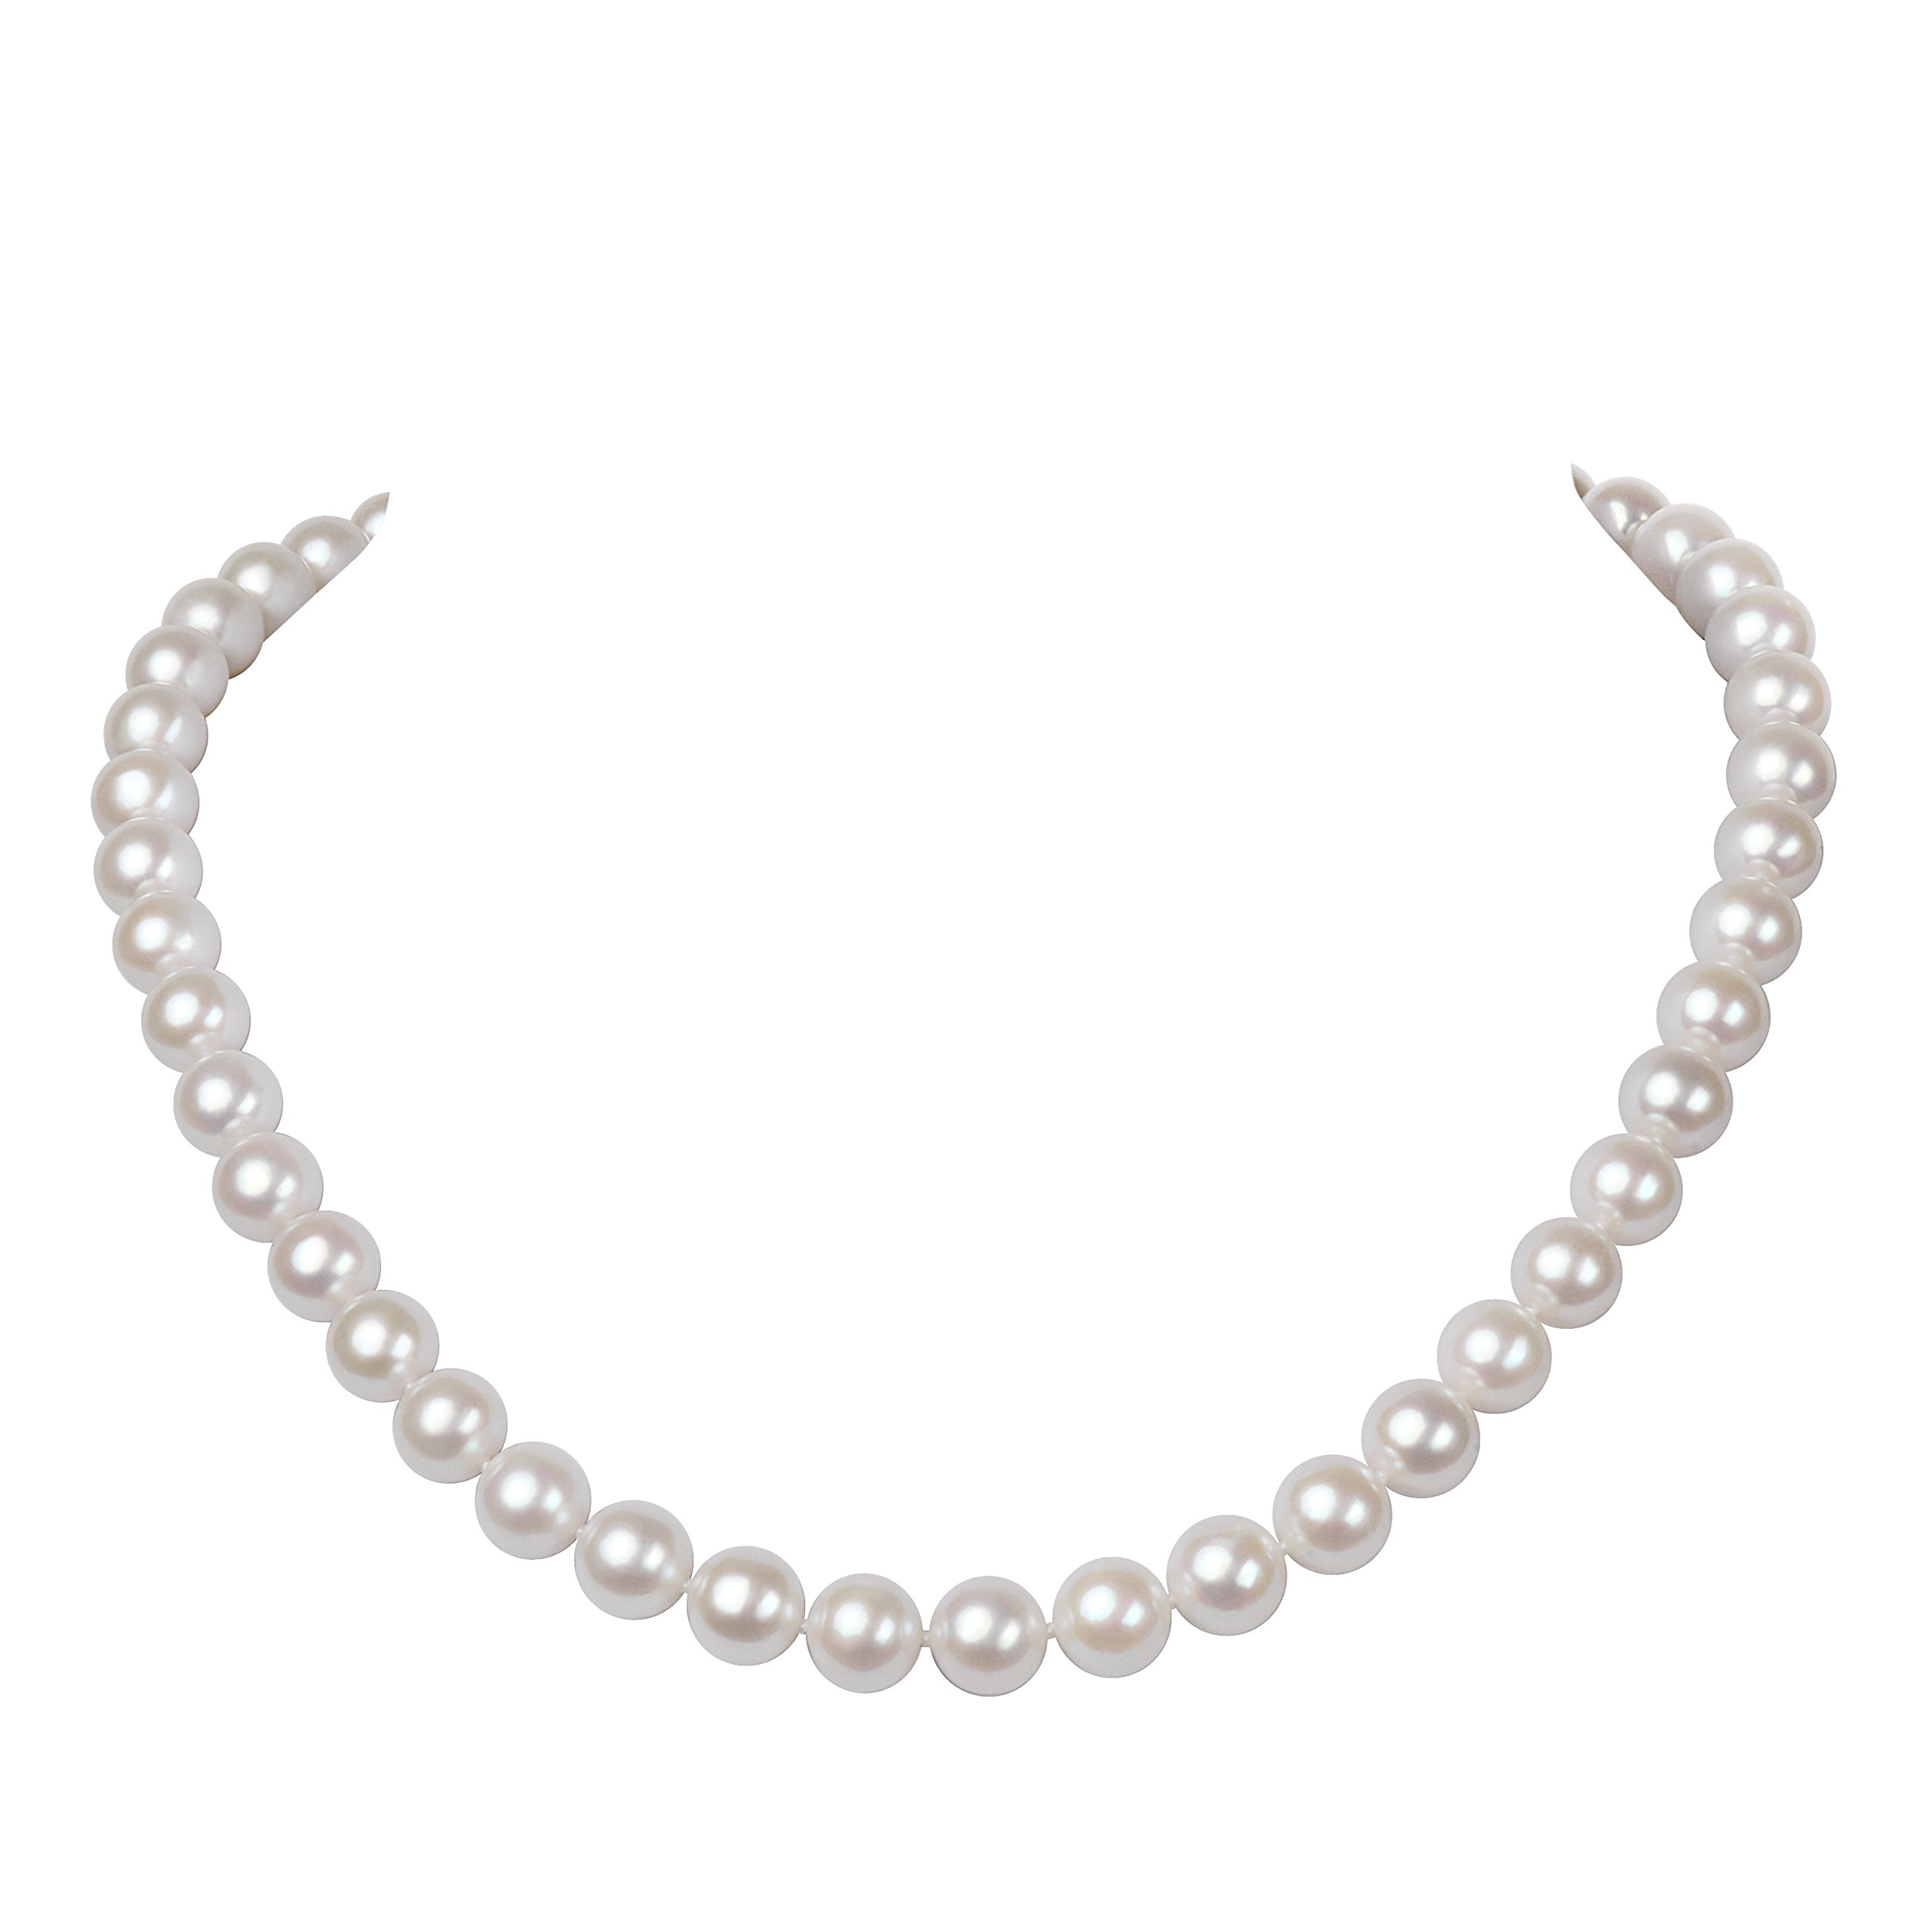 Malahill AAA Quality Round White Freshwater Cultured Pearl Necklace for Women, 925 Silver Clasp Plated by White Gold and Paved by Micro Zircon (8-9mm, 18'')